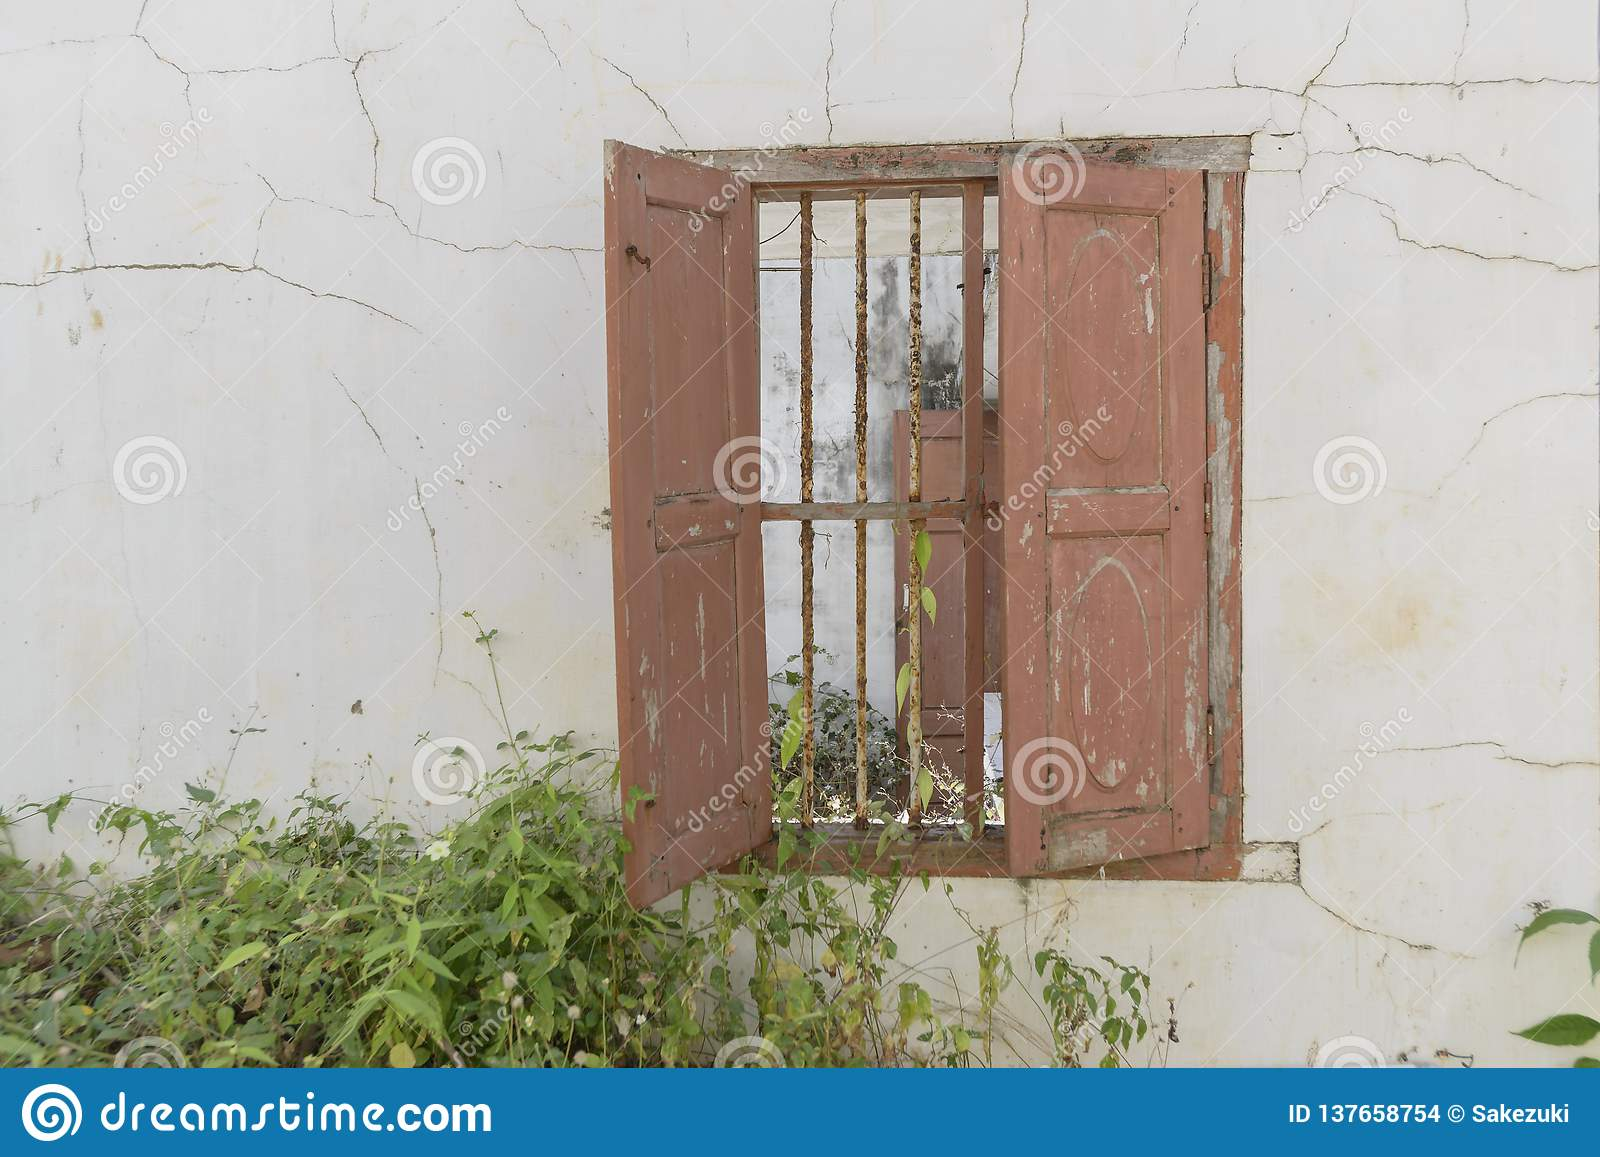 Window In An Old Abandoned House With Wooden Shutters And